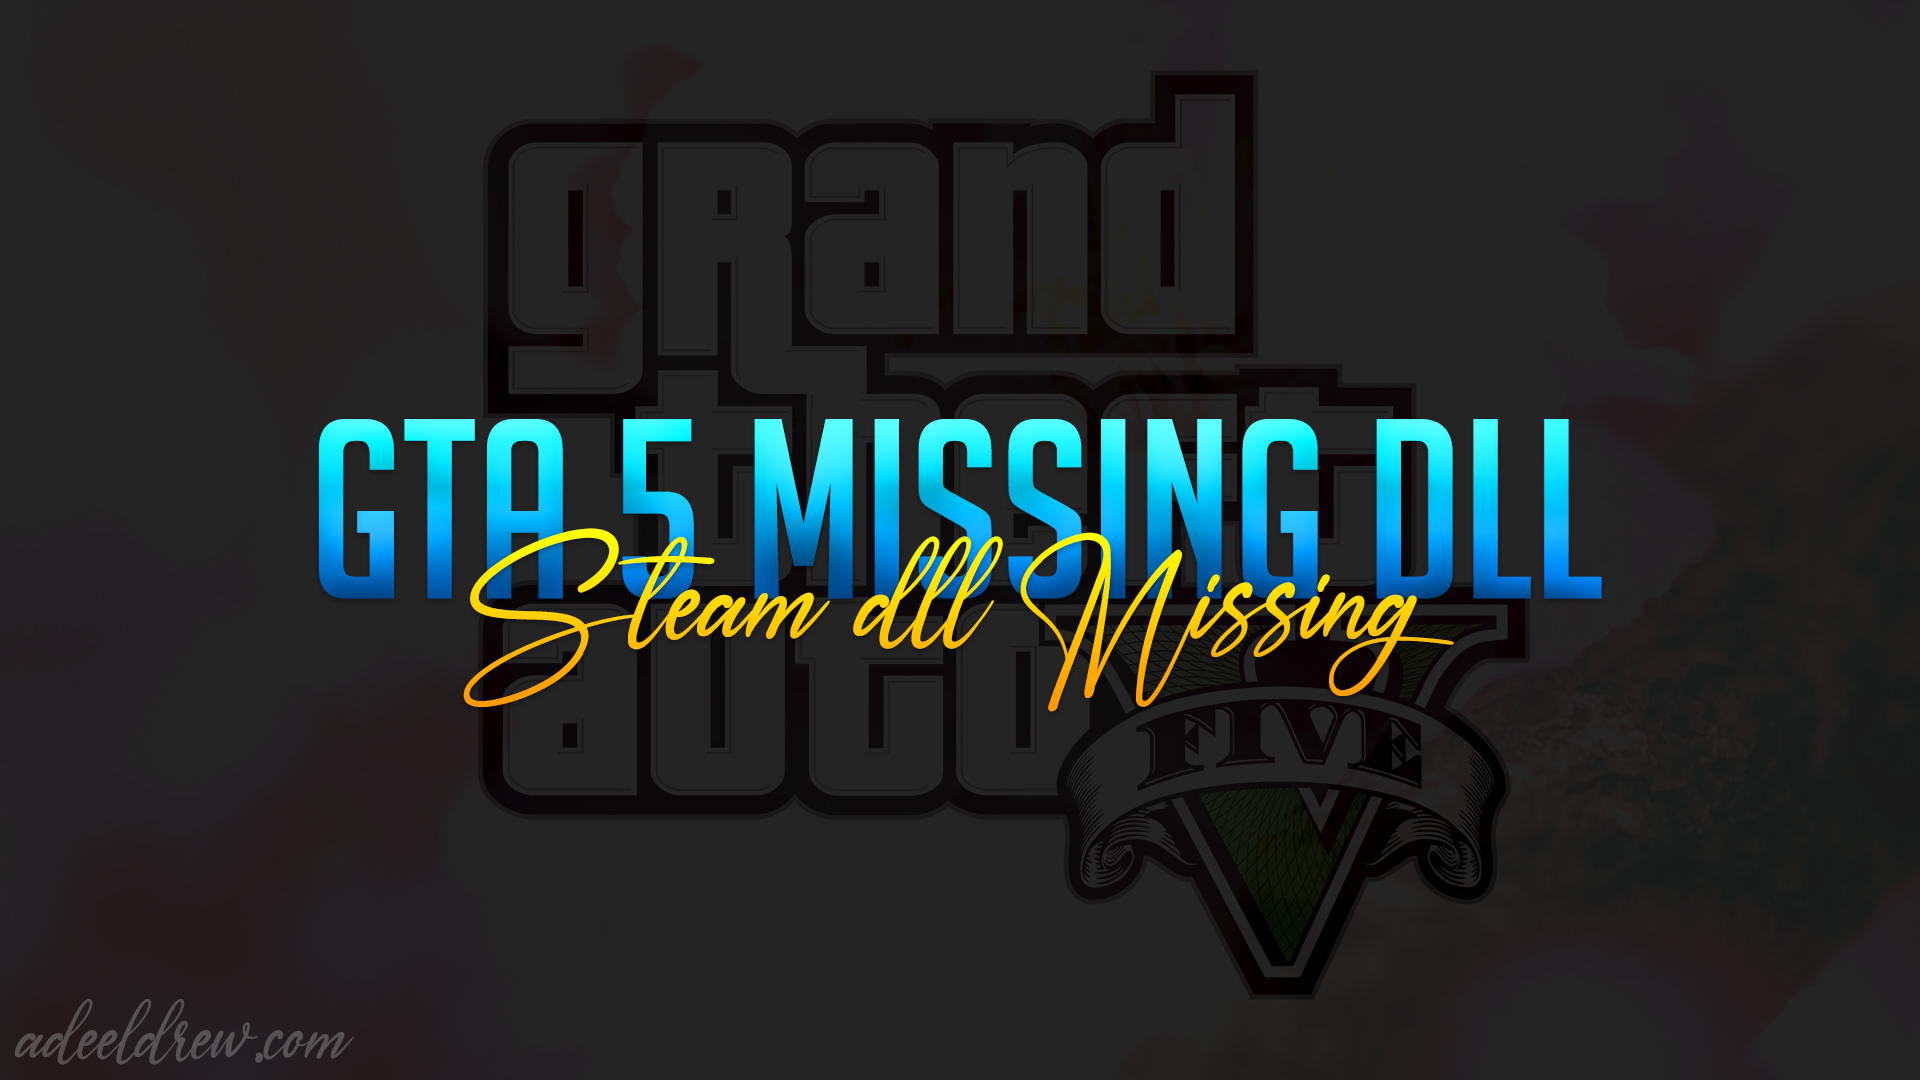 gta 5 how to fix gta 5 xinput1_3.dll is missing how to fix gta 5 isdone.dll error how to fix gta 5,gta v,gta 5 error fix how to fix gta 5 steam_api.dll missing error how to fix gta 5 xinput1_3.dll is missing error how to fix gta 5 isdone.dll gta 5 xinput1_3.dll is missing how to fix gta 5 xinput error how to fix steam_api64.dll how to fix corrupted files on gta 5 gta 5 repair tool gta v dll files free download how to verify gta v files gta 5 not installing pc gta 5 files list gta 5 fix zip download mf dll missing gta v how to fix corrupted files on gta 5 gta 5 skip verification file zip gta 5 files list gtavlauncher.exe -verify how to verify fivem files gta 5 not installing gta 5 fix zip download gta 5 executable path not found gta 5 fix launcher gta 5 won t load pc gtav installer steam failed to initialize gta 5 gta 5 can t download files can t play gta online ps4 gta 5 files missing rockstar services how to clear cache on xbox one the rockstar game services are unavailable err_gfx_d3d_init gta 5 fix 2019 gta v err_gfx_d3d_init startup err_gfx_d3d_int err_d3d_init d3d init failed err_gfx_d3d_init reddit how to fix corrupted files on gta 5 gta 5 skip verification file zip gta 5 files list gtavlauncher.exe -verify how to verify fivem files gta 5 not installing gta 5 fix zip download gta 5 executable path not found gta 5 fix launcher gta 5 won t load pc gtav installer steam failed to initialize gta 5 gta 5 can t download files can t play gta online ps4 gta 5 files missing rockstar services how to clear cache on xbox one the rockstar game services are unavailable err_gfx_d3d_init gta 5 fix 2019 gta v err_gfx_d3d_init startup err_gfx_d3d_int err_d3d_init d3d init failed err_gfx_d3d_init reddit gta 5 how to fix gta 5 gta v how to fix how to fix gta 5 online grand theft auto 5 how to fix gta 5 lag on pc how to fix gta 5 controls how to fix gta 5 isdone.dll how to fix gta 5 stop working how to fix 0xc0000142 for gta 5 how to fix fitgirl repack gta 5 gta 5 mods how to fix g